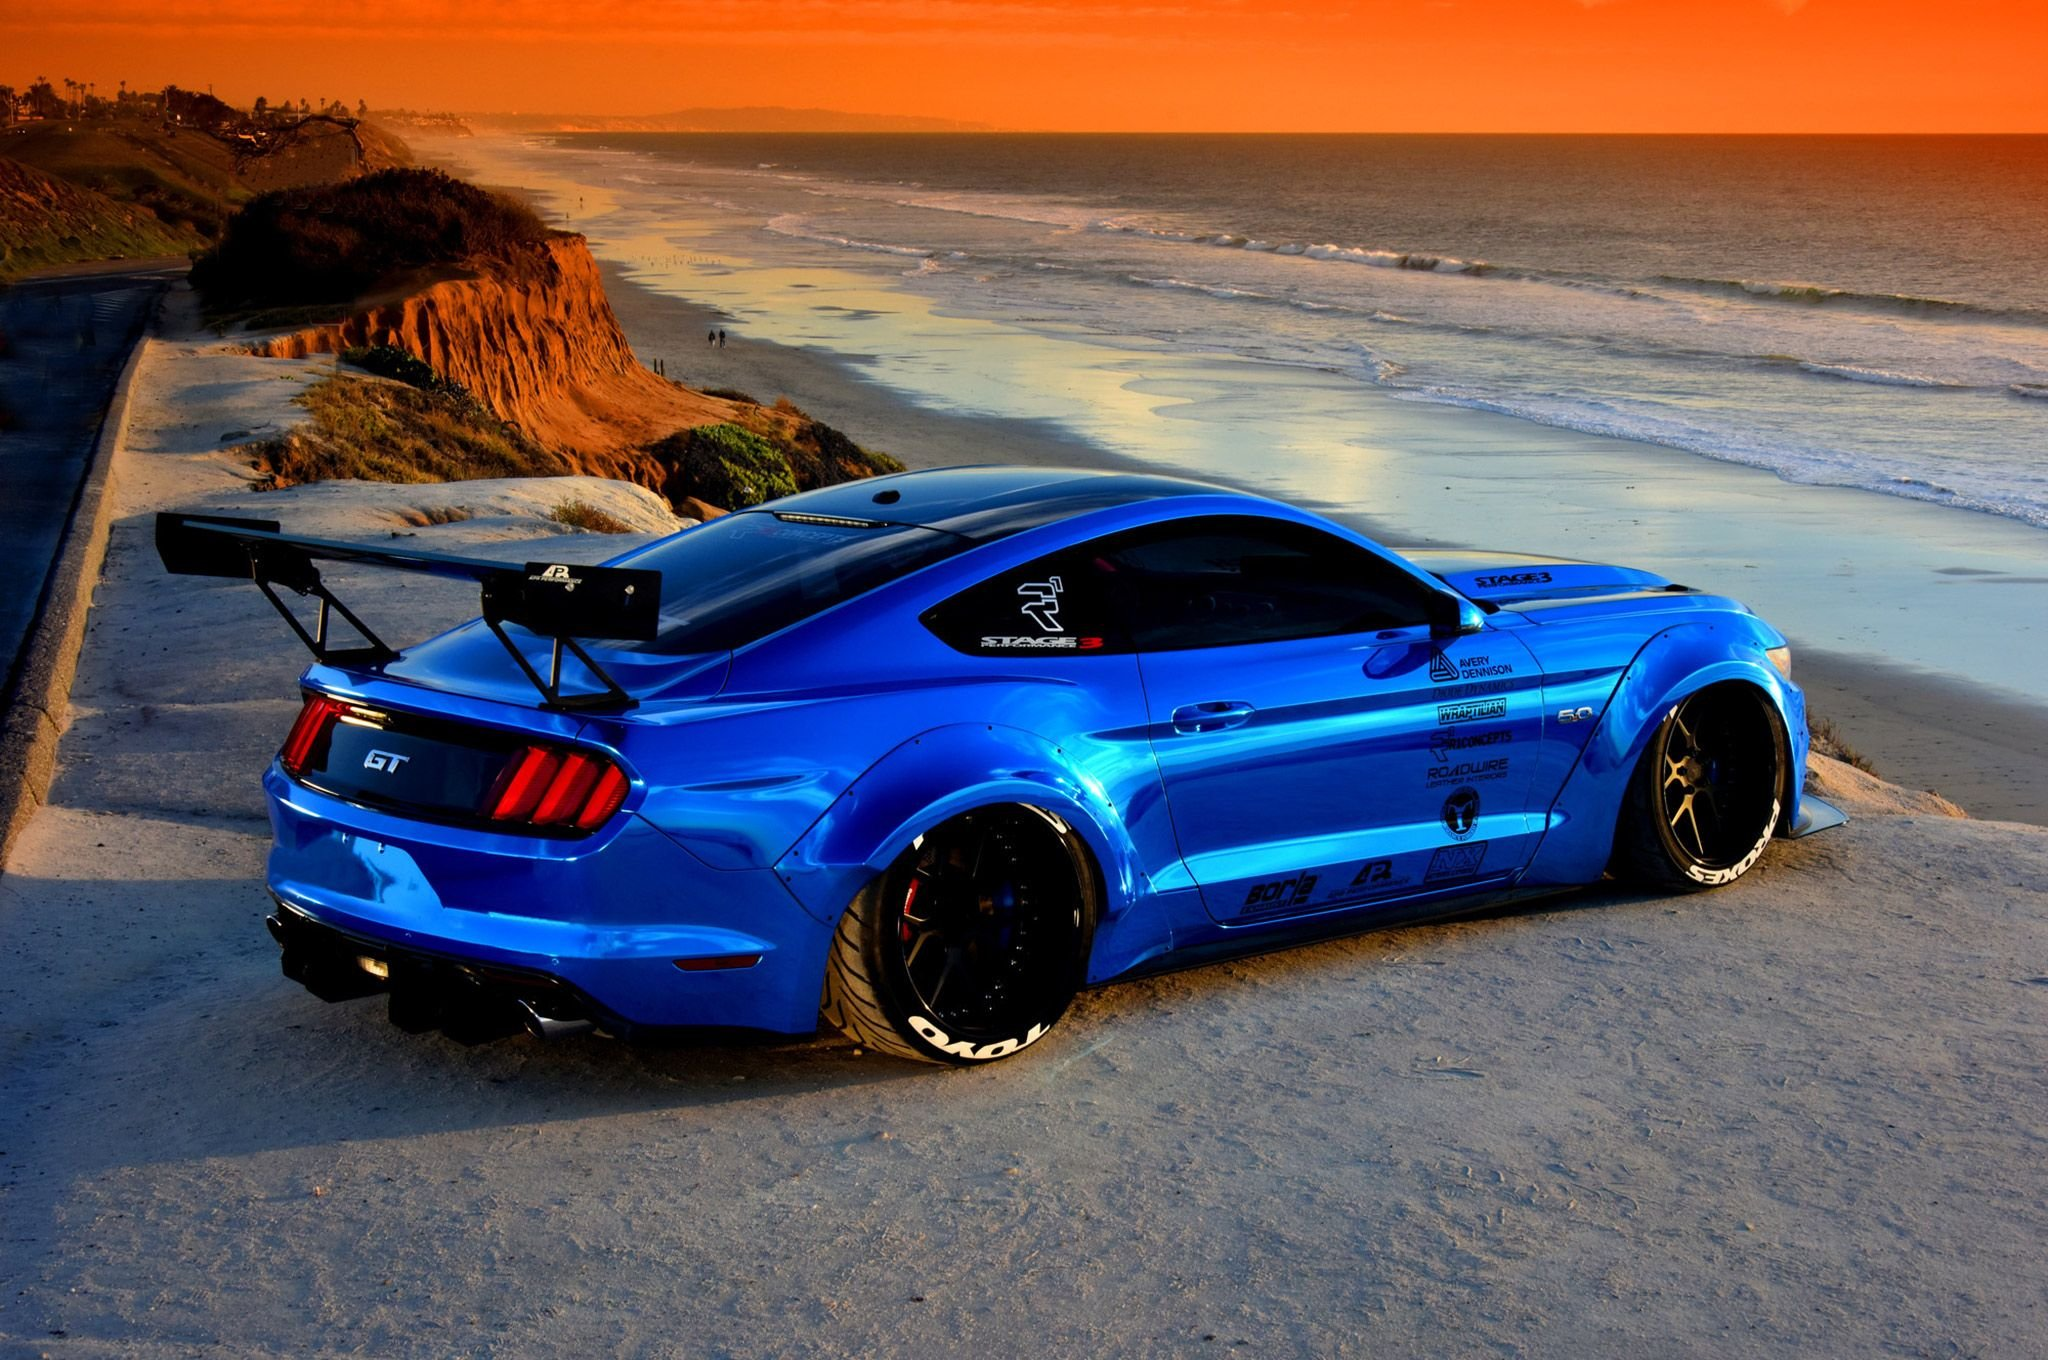 2015 s550 ford mustang drift race racing muscle hot rod. Black Bedroom Furniture Sets. Home Design Ideas